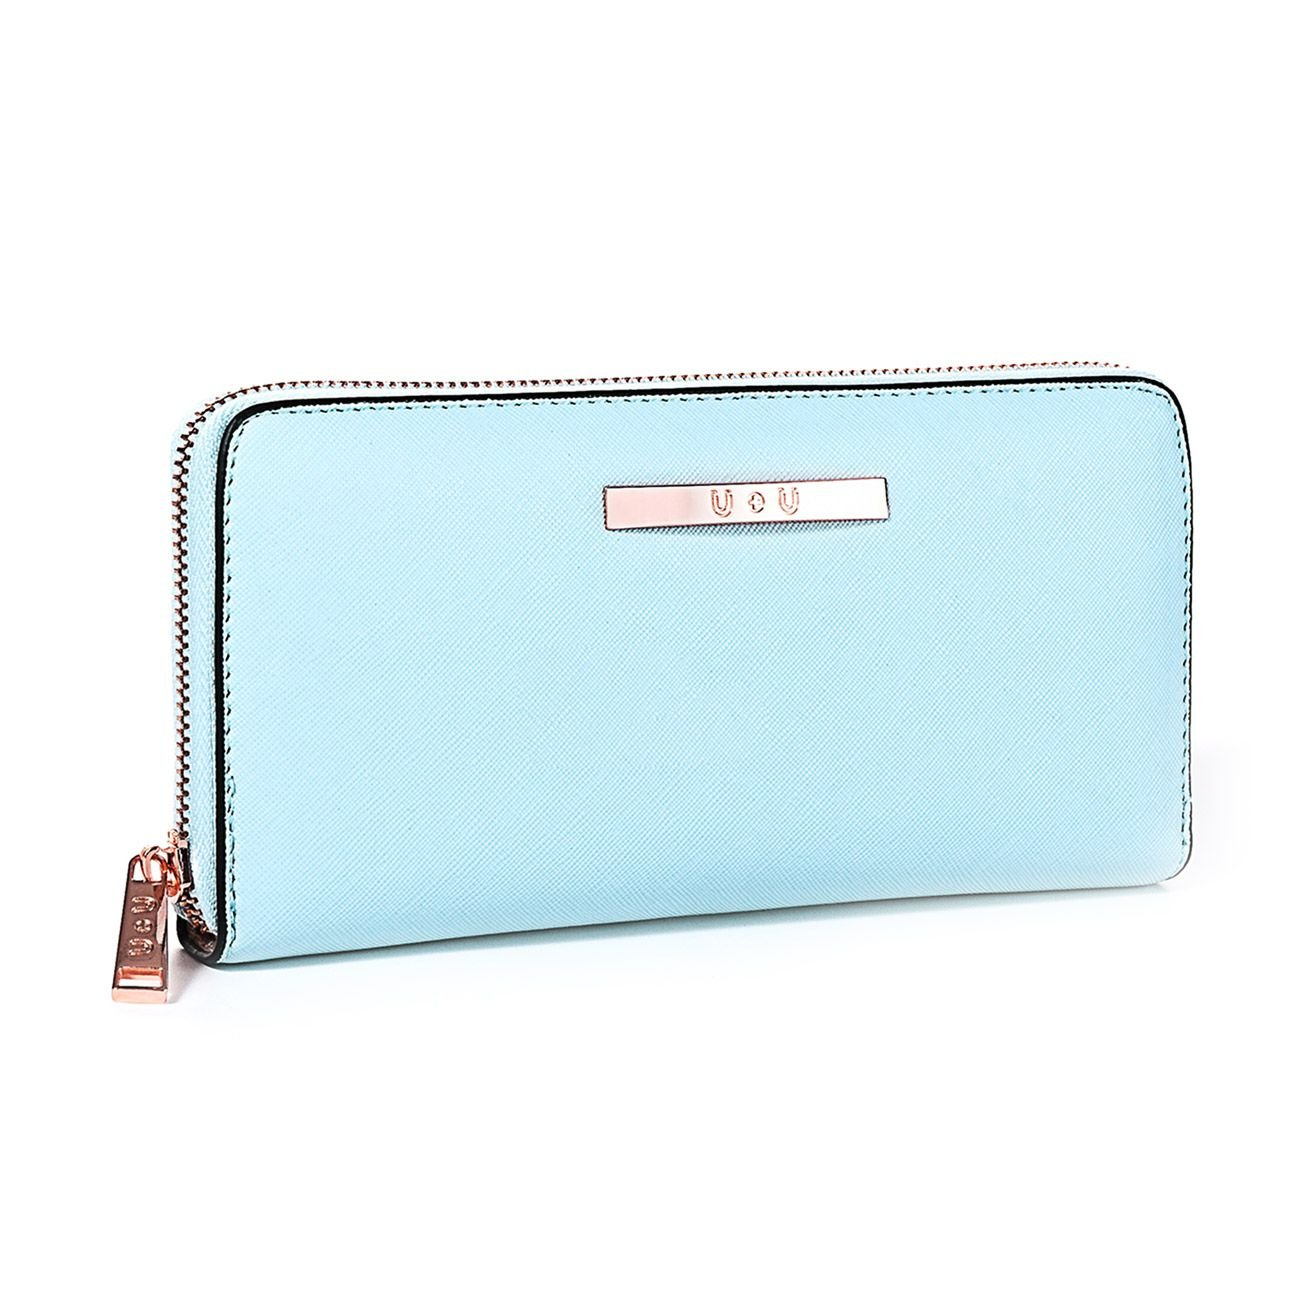 Womens Wallet Long Soft Leather Clutch Card Holder Zipper Purse(Blue)